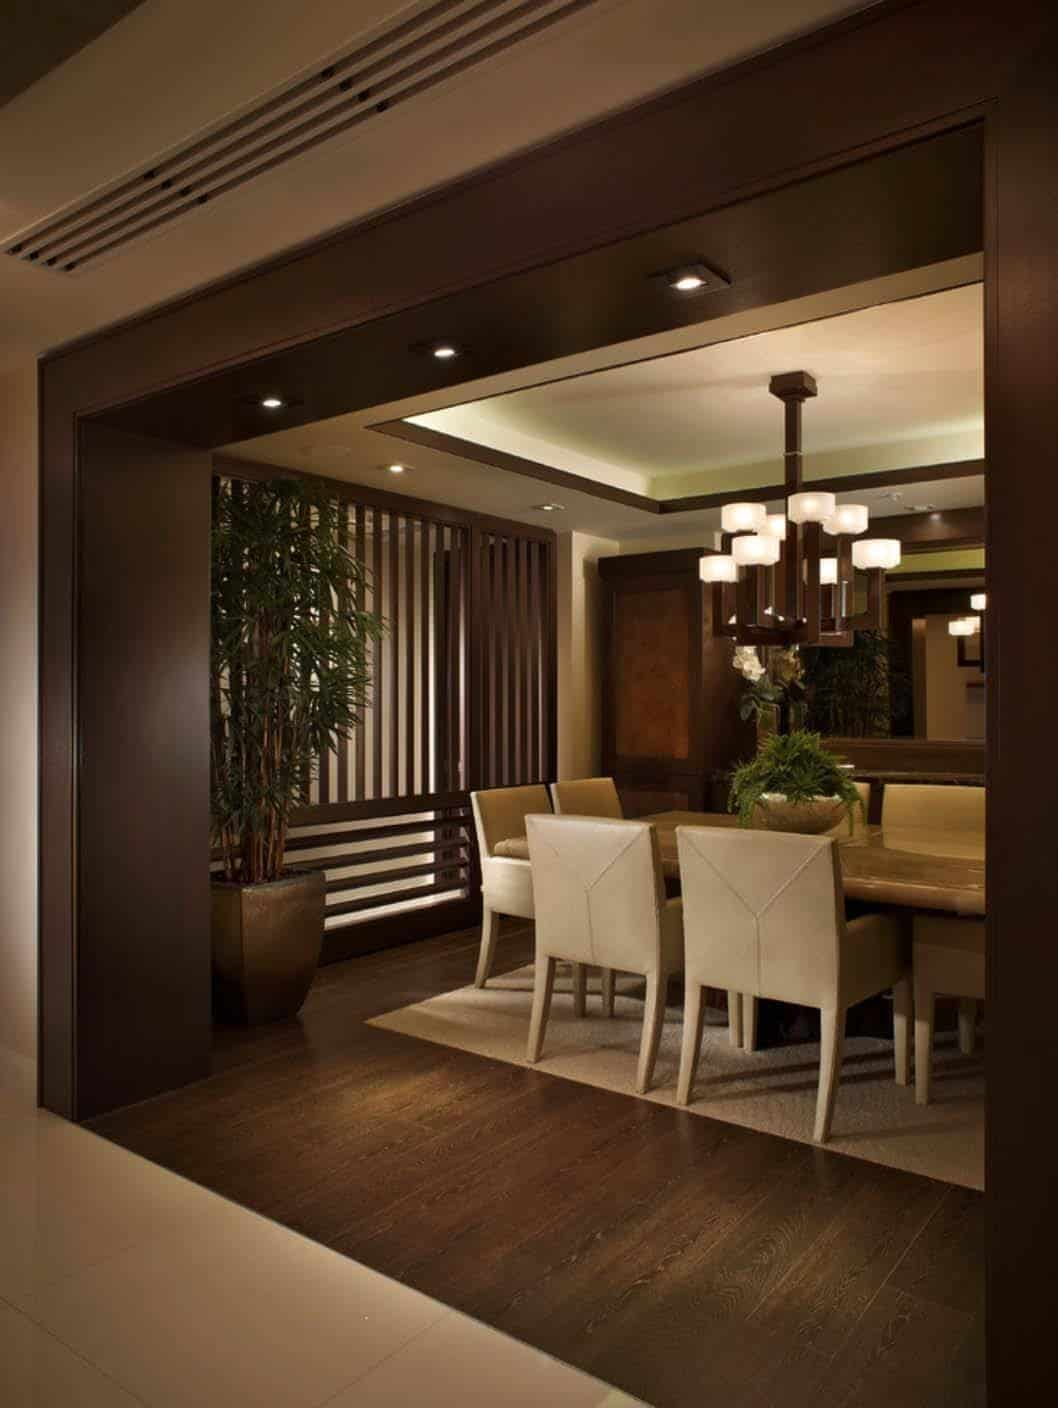 Contemporary Residence-Interiors by Steven G-09-1 Kindesign